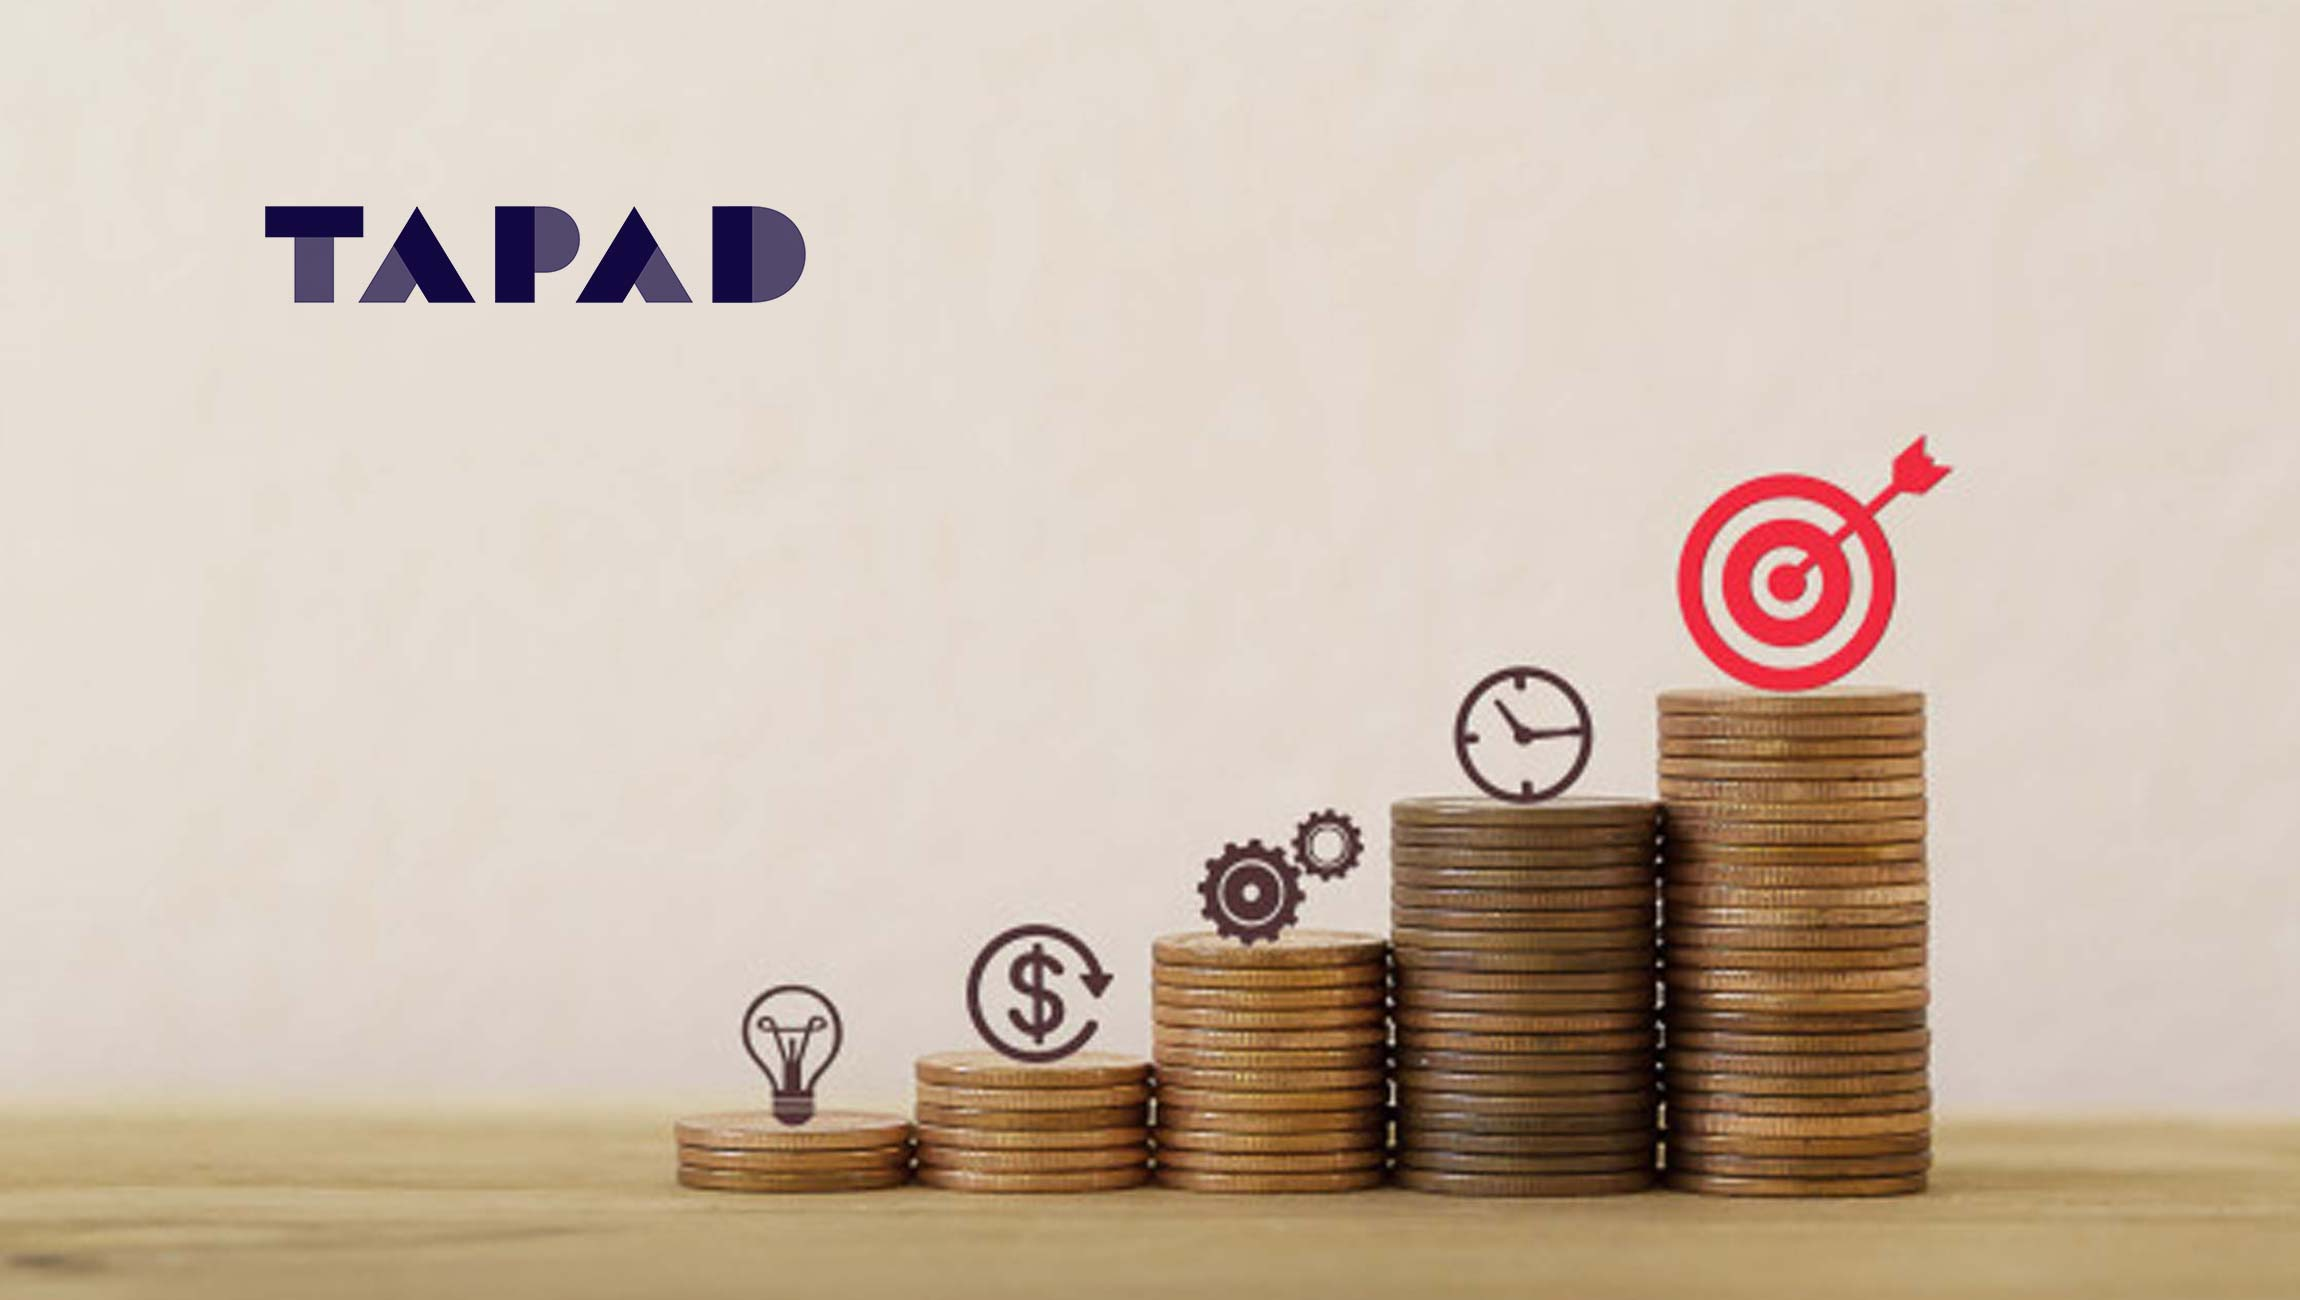 Lucid Selects Tapad to Enable Global Reach and Expand Scale of Targeted Sample Audiences for Survey Deployment and Insights